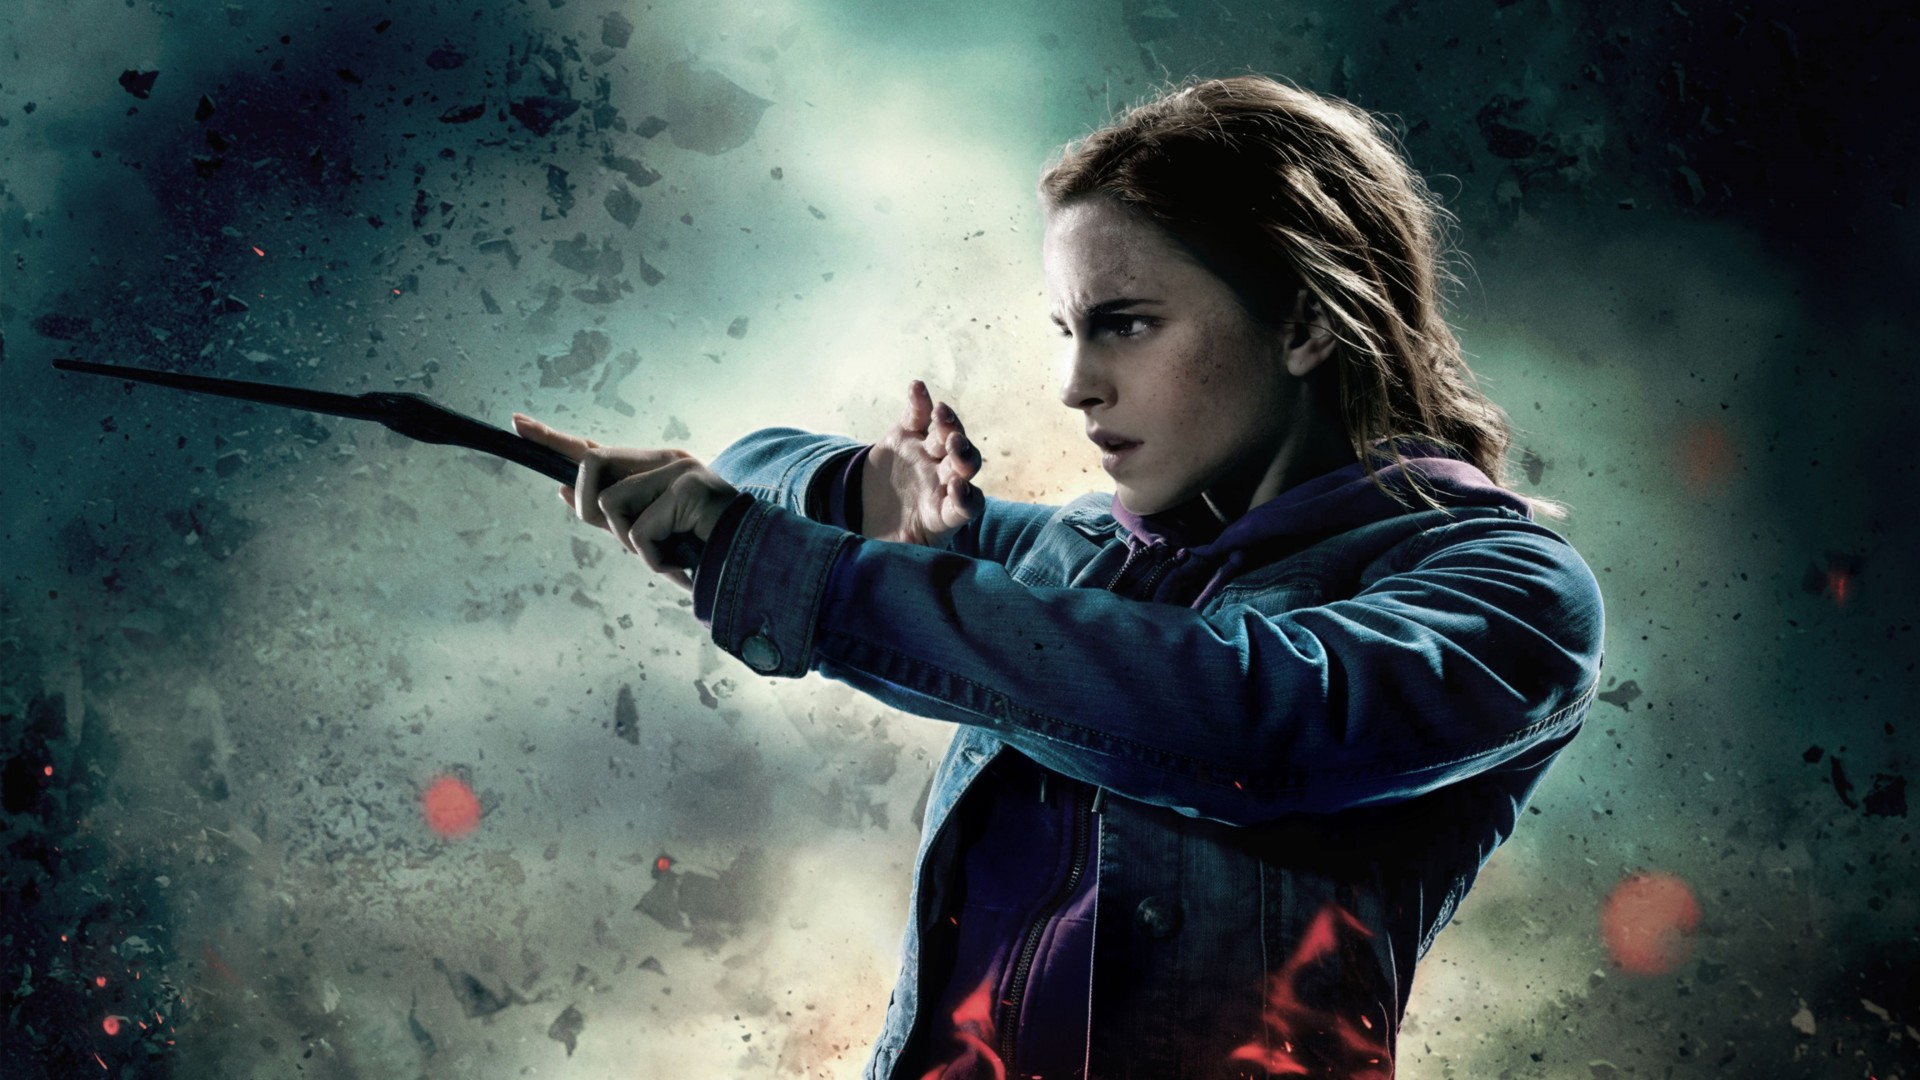 Hermione Harry Potter And The Deathly Hallows Part 2 HD Wallpaper